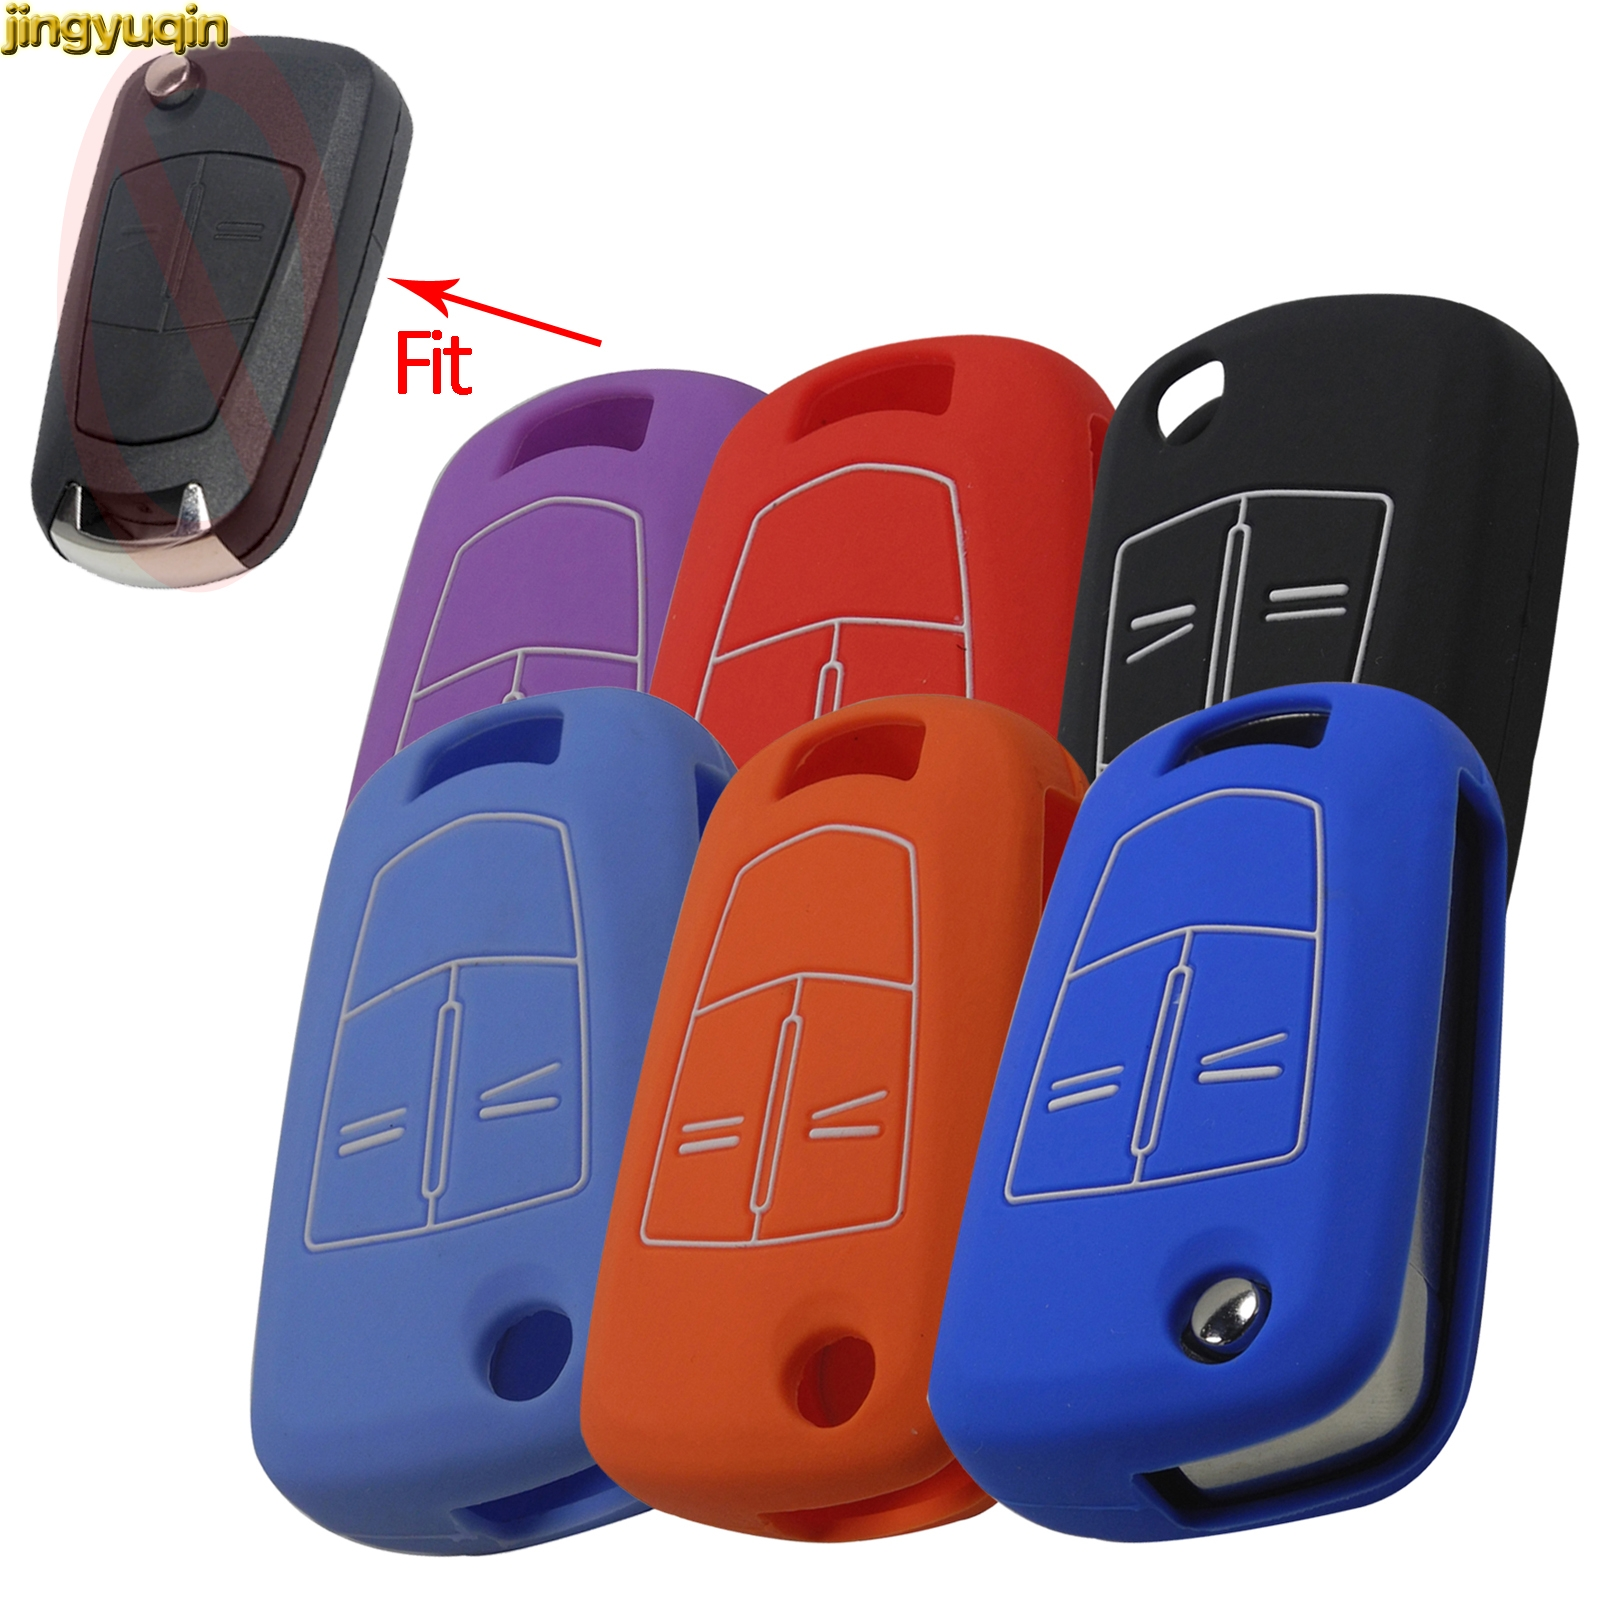 Jingyuqin Remote Silicone Car Key Case Cover Protector For Vauxhall Opel H Insignia J Vectra C Corsa D Zafira G Astra Signum